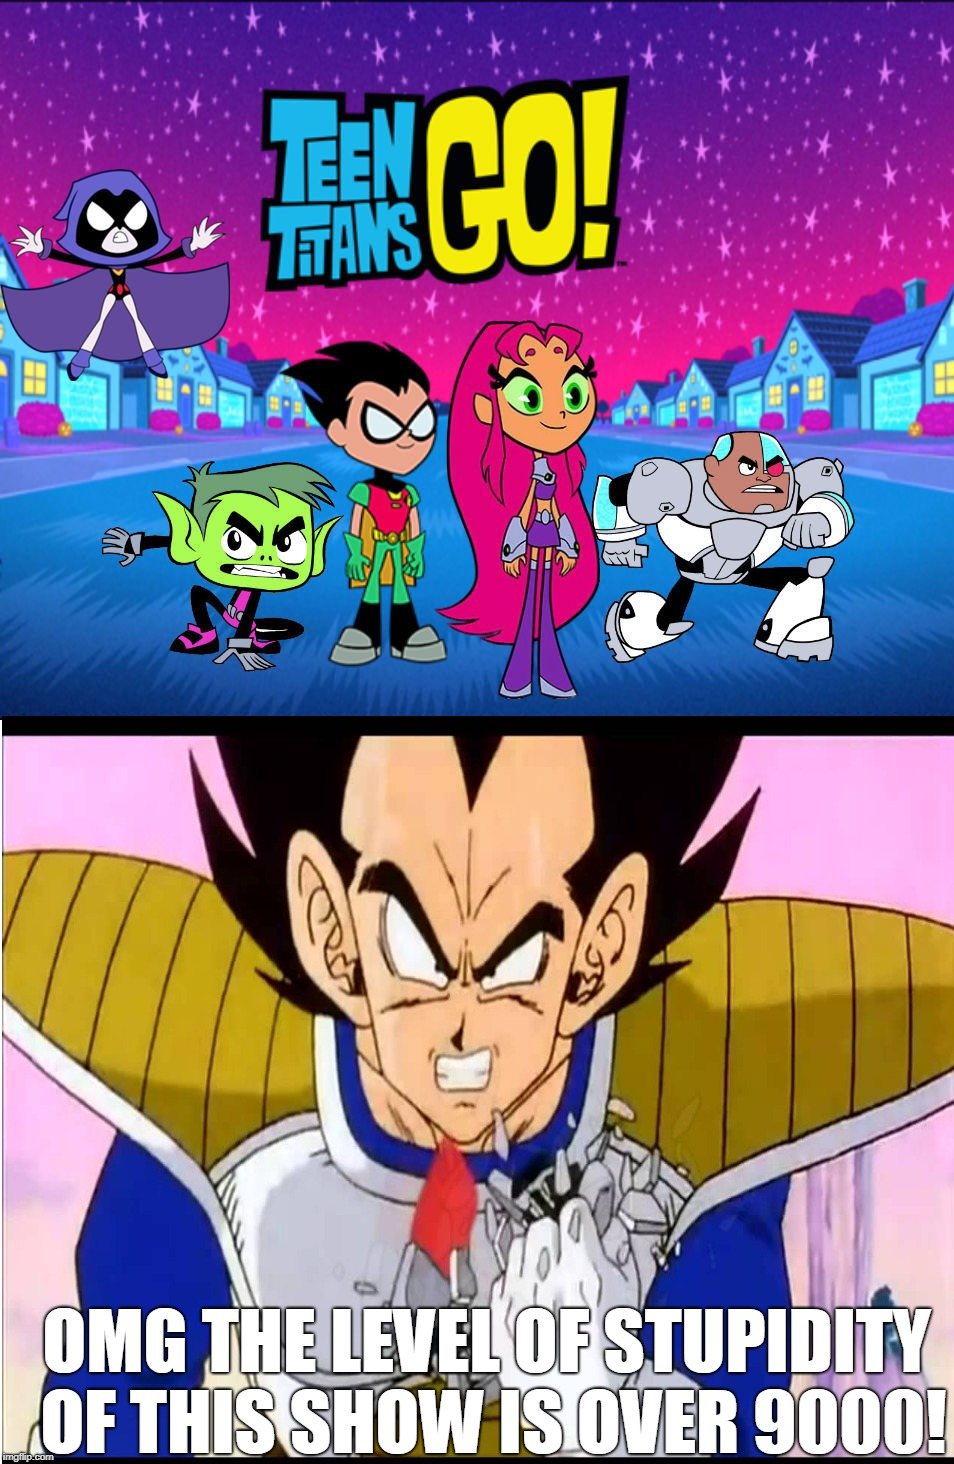 Vegeta Hates Teen Titans Go | OMG THE LEVEL OF STUPIDITY OF THIS SHOW IS OVER 9000! | image tagged in dragon ball z,memes,teen titans go,it's over 9000 | made w/ Imgflip meme maker